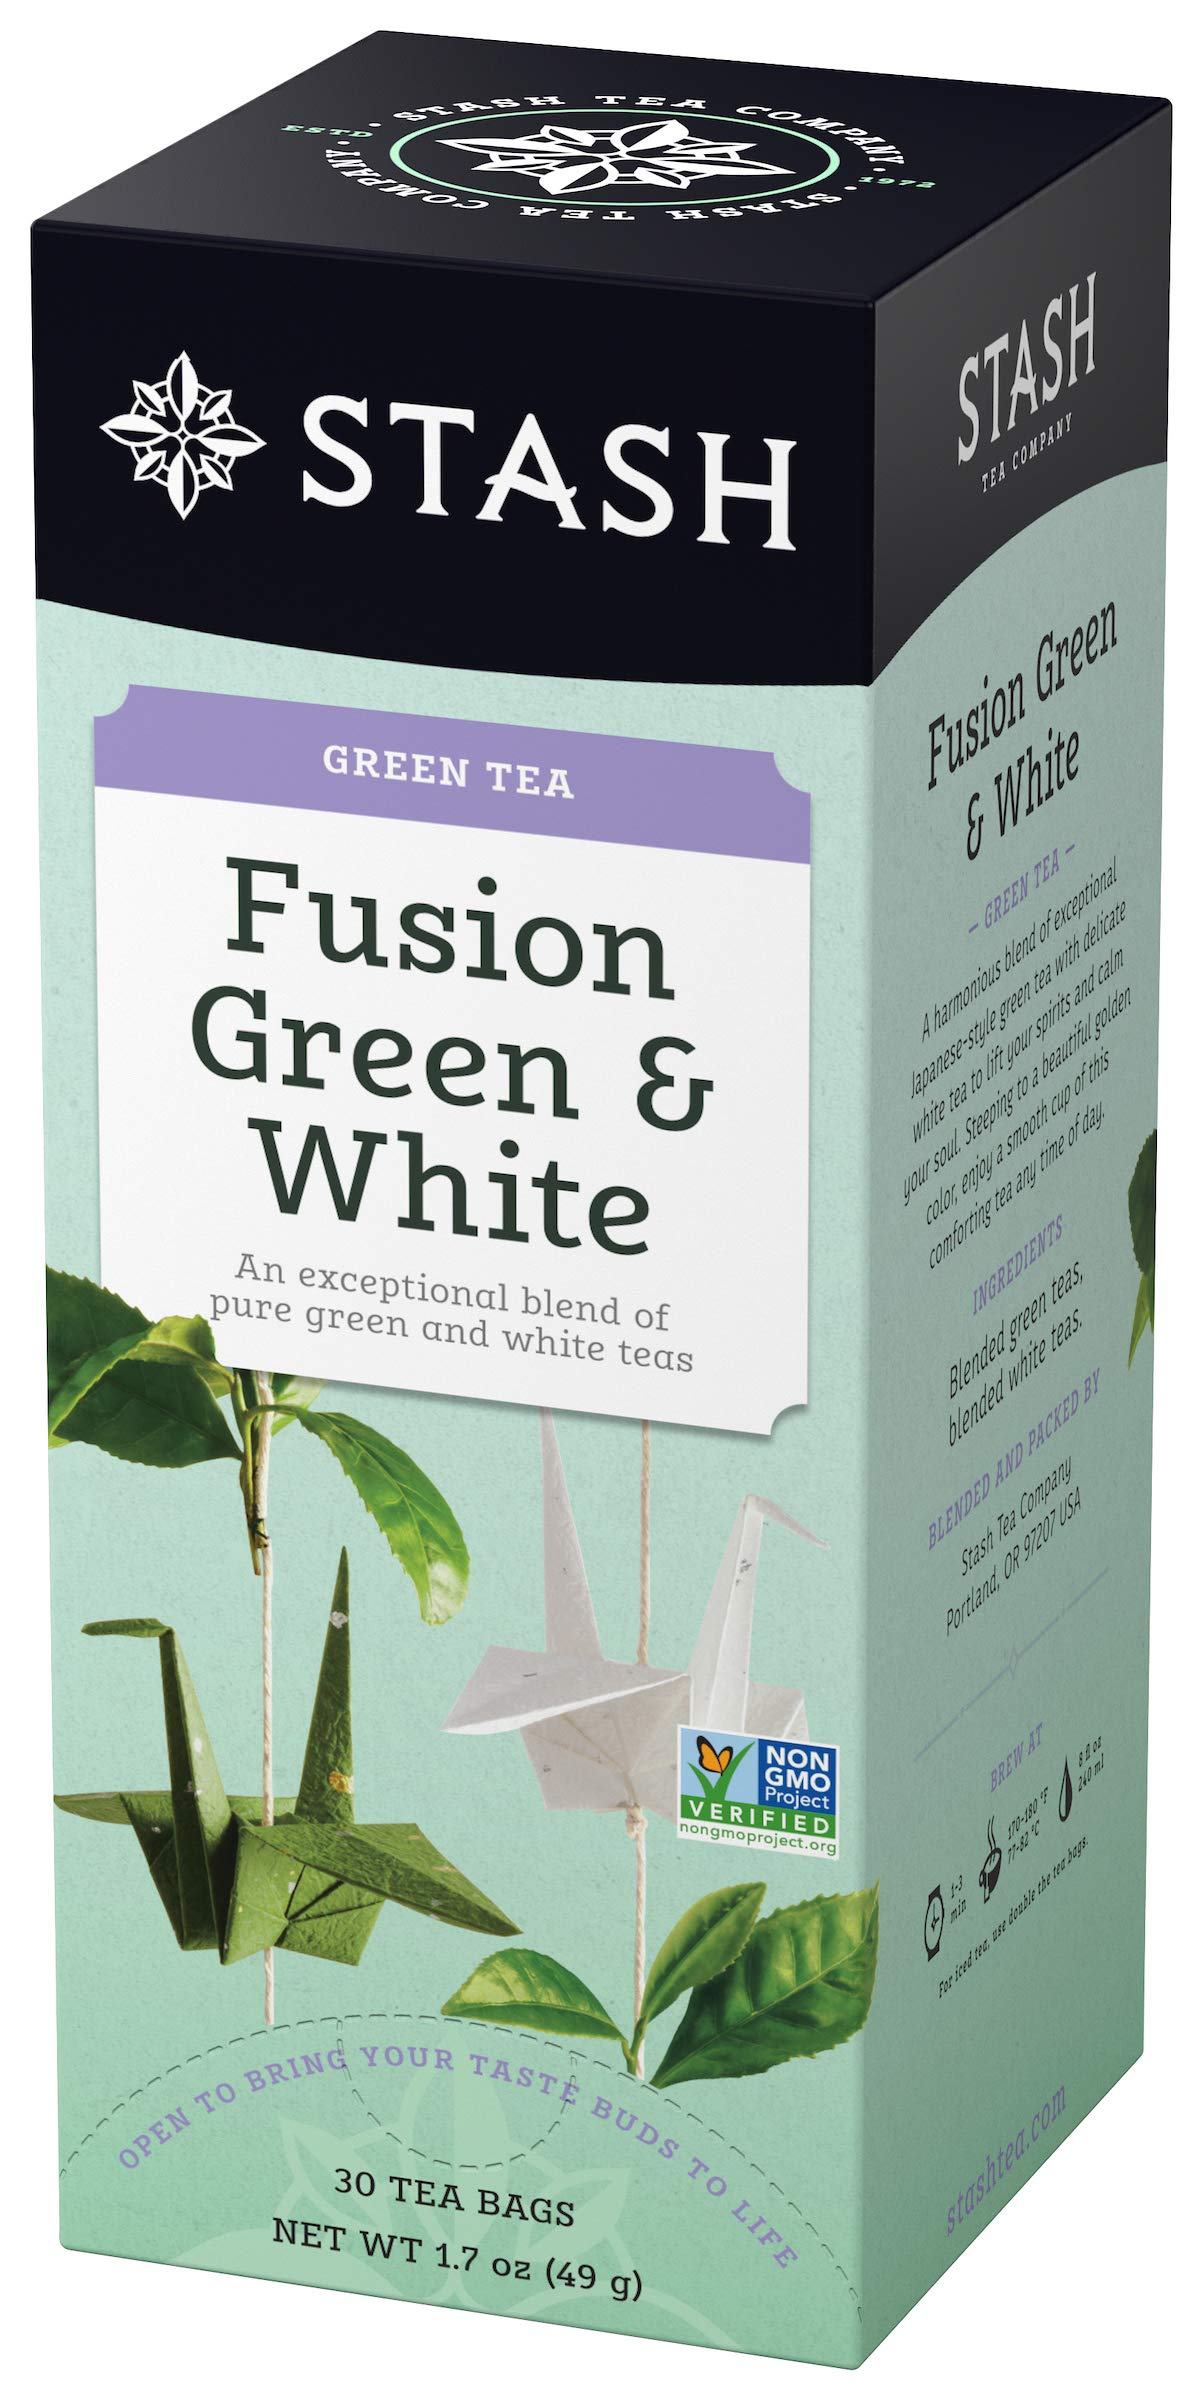 Stash Tea Fusion Green & White Tea 30 Count Tea Bags in Foil (Pack of 6) (Packaging May Vary) Individual Tea Bags for Use in Teapots Mugs or Cups, White Tea and Green Tea, Brew Hot or Iced